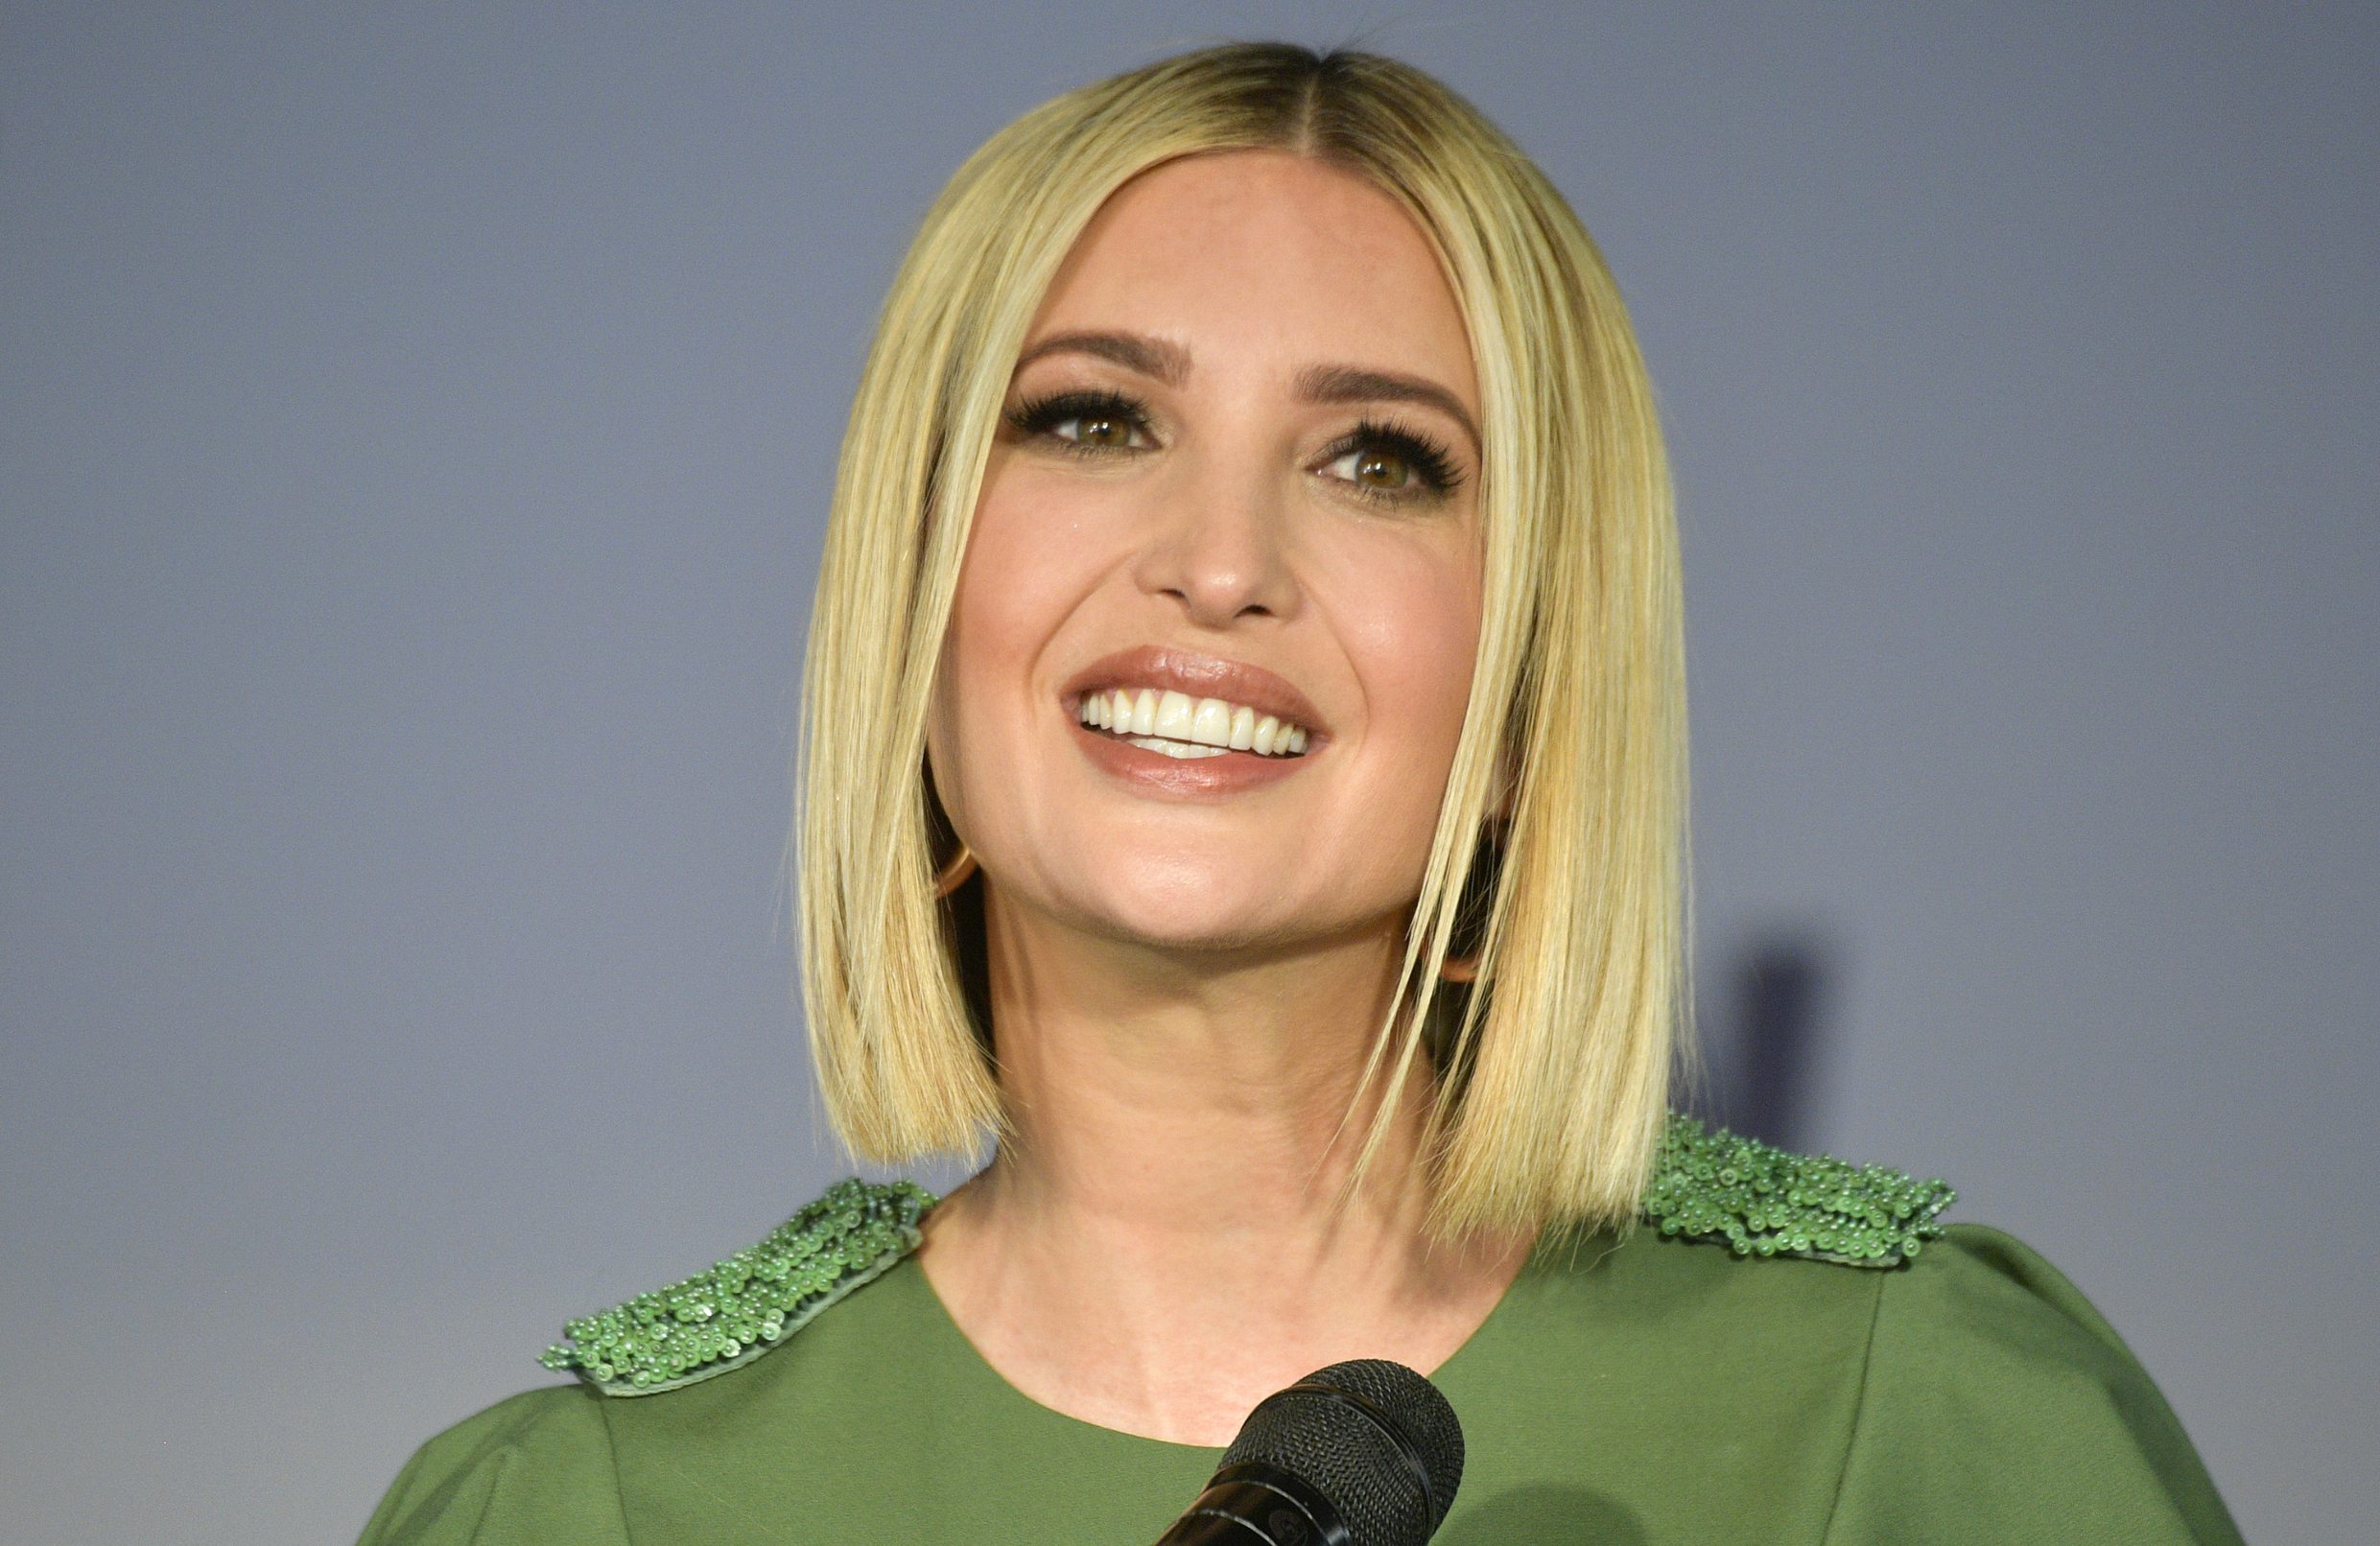 Ivanka Trump, advisor and daughter of US President Donald Trump(R), speaks during a ceremony with Colombian women in Bogota on September 3, 2019. Ivanka Trump is visiting Colombia to strengthen trade relations between the two nations and accompany women's empowerment programs., Image: 468944013, License: Rights-managed, Restrictions: , Model Release: no, Credit line: Profimedia, AFP